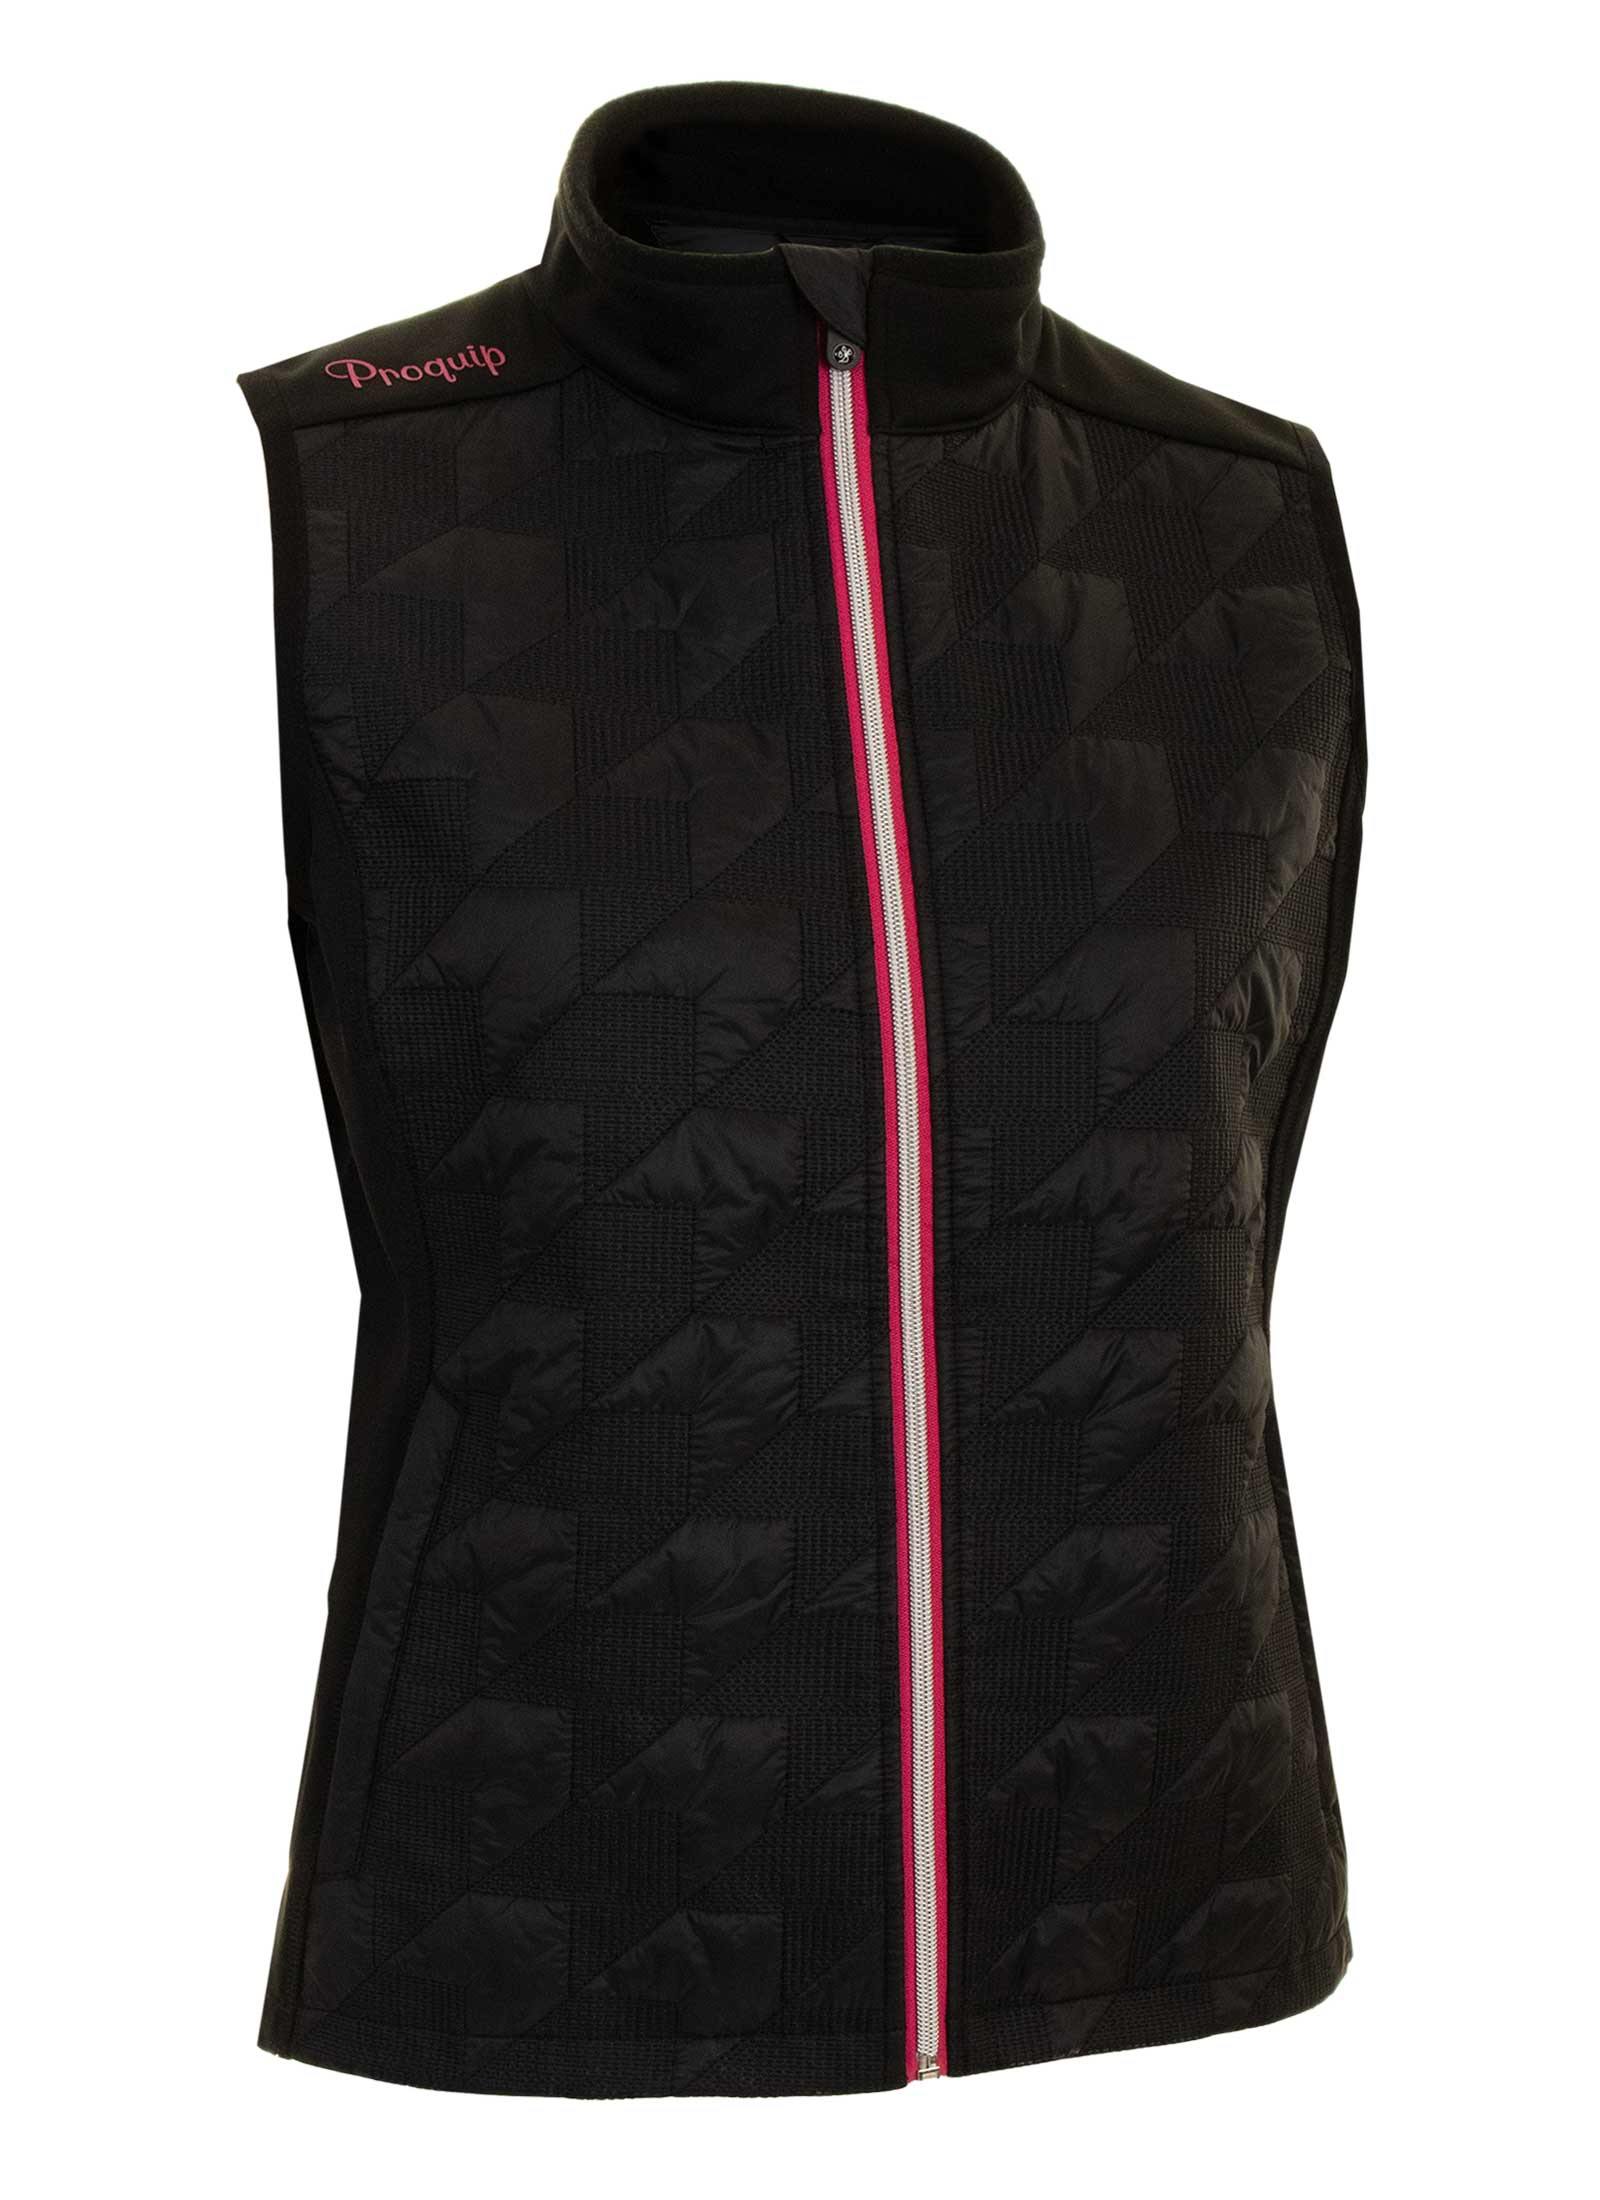 Therma-Tour Dawn Vests